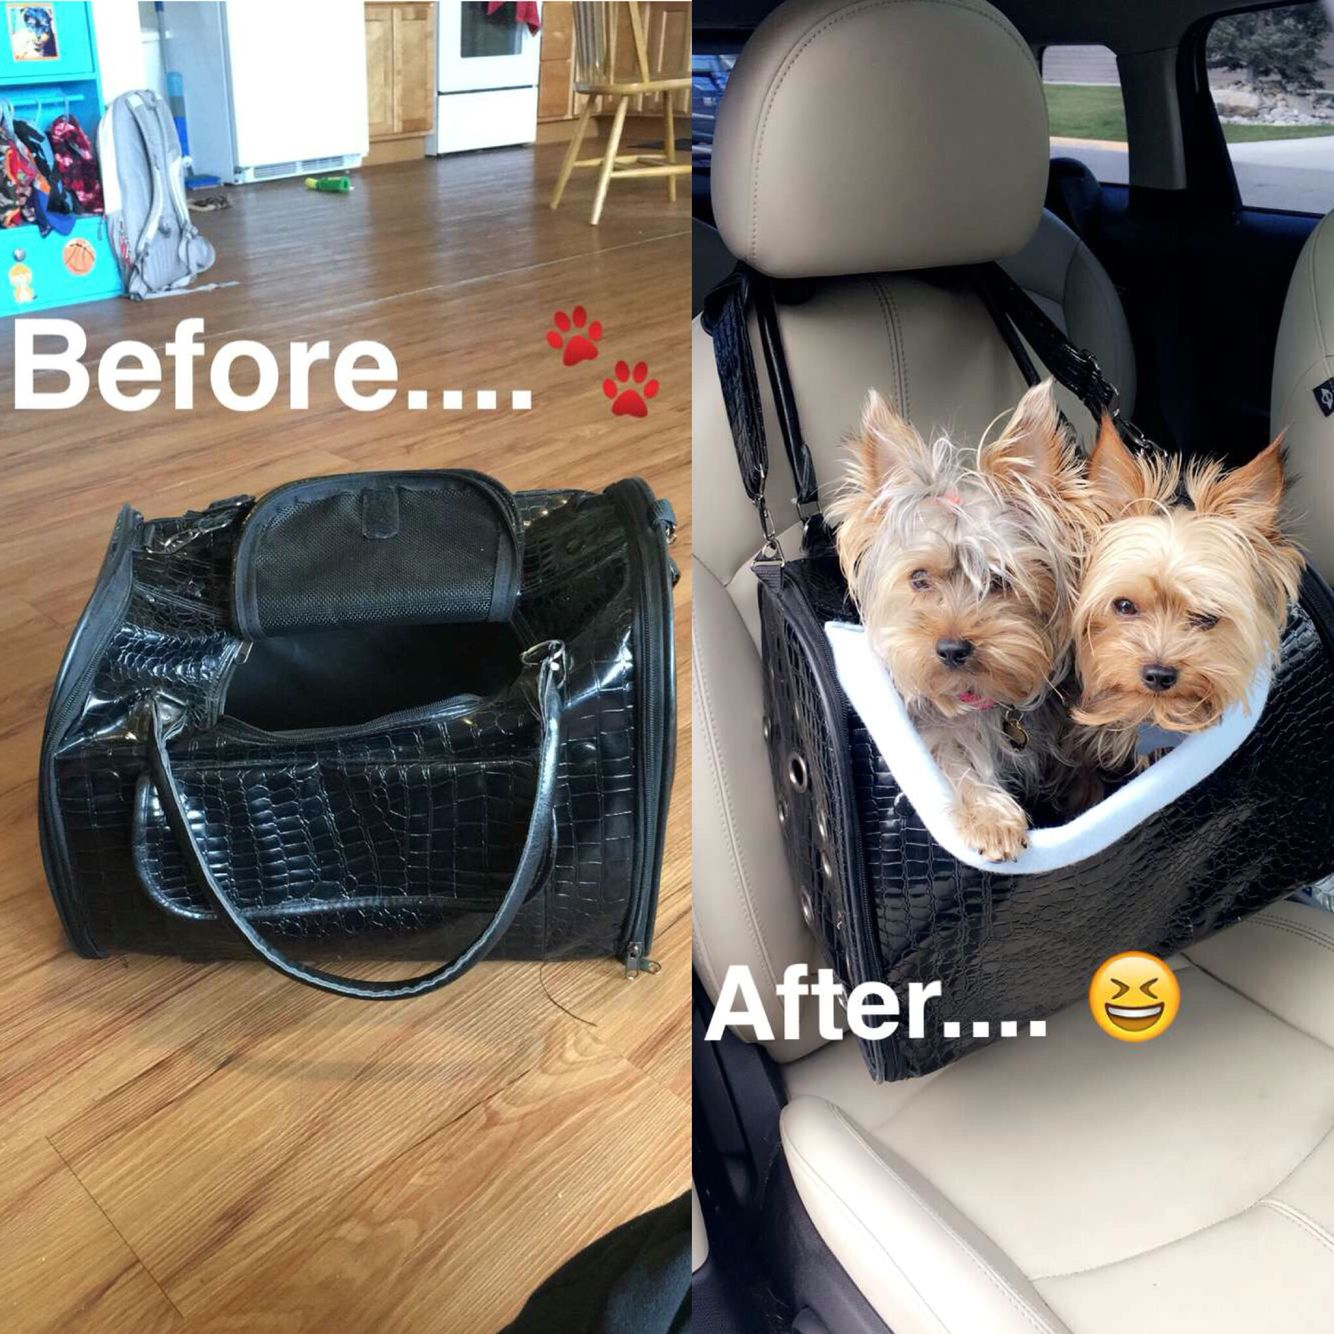 Diy dog car seat tutorial sewing pinterest dog car seats dog diy dog car seat made from an old suitcase i got at goodwill and some scrap fabric total cost 299 solutioingenieria Images